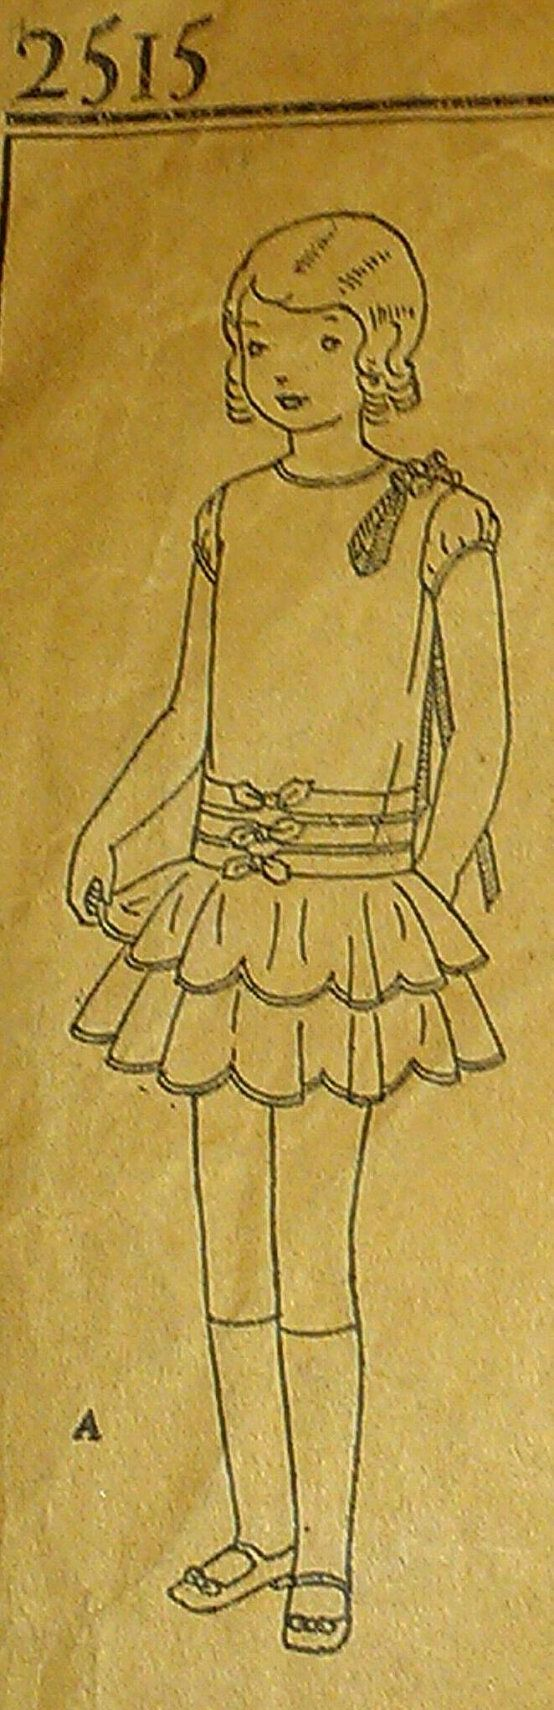 Vintage 1930s Girl's Slip Over Flounce Tiered Drop Waist Bow Trimmed Cummerbund Effect Frock Dress Sewing Pattern 2515 Size 7